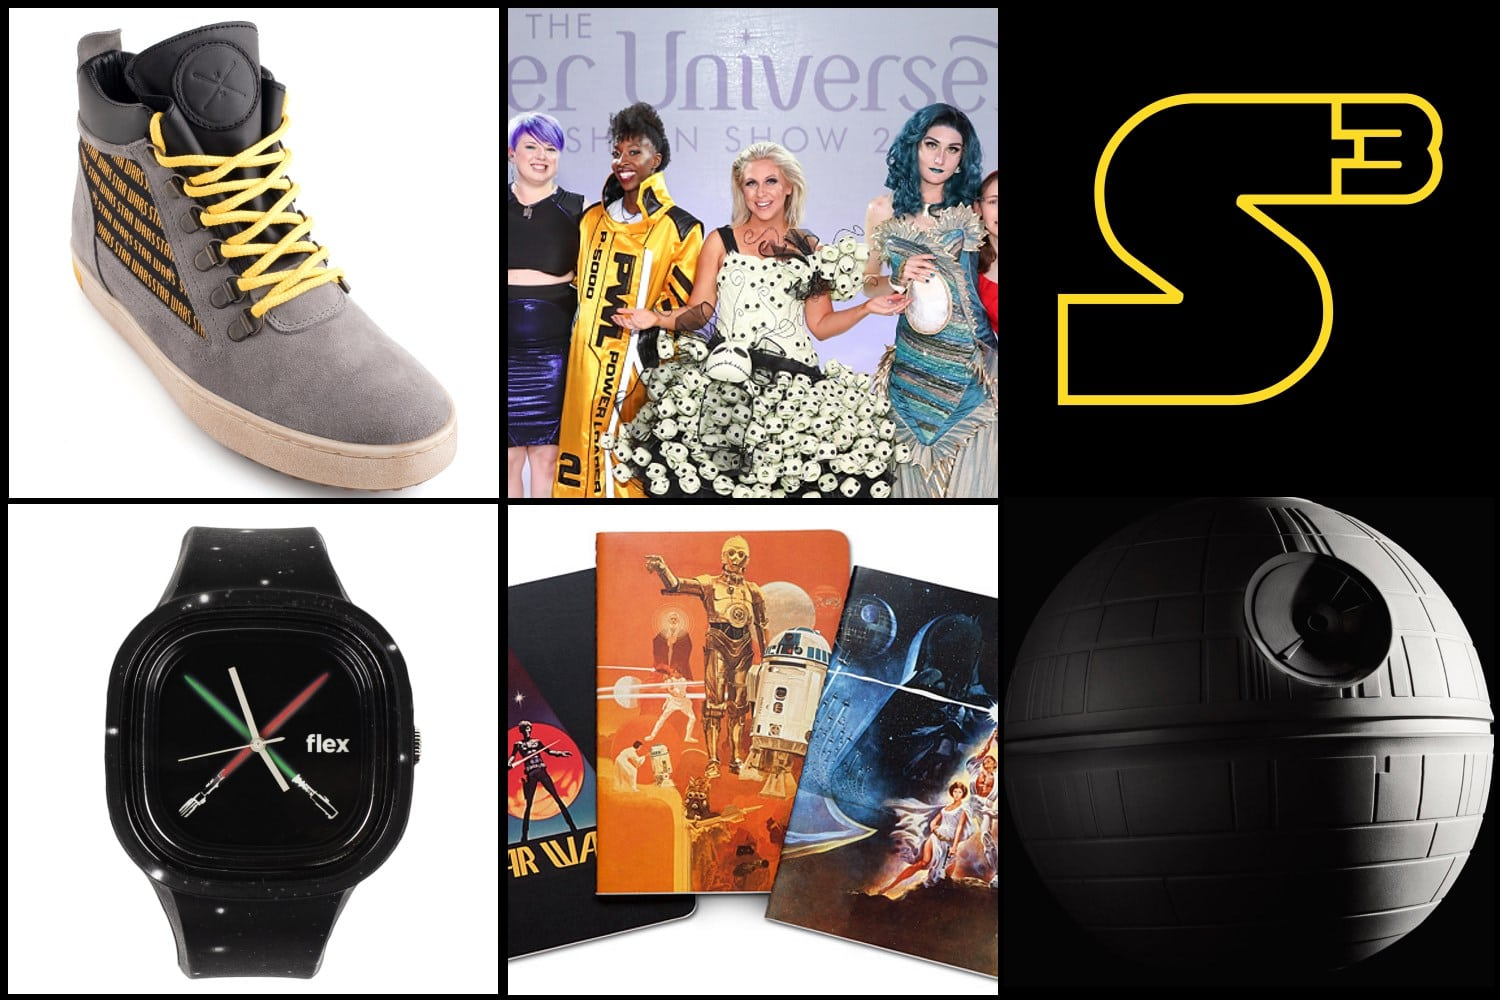 Starships, Sabers, and Scoundrels episode 61.1 - That's SO Wizard! Scoundrels Special Edition Feature Image and fashion